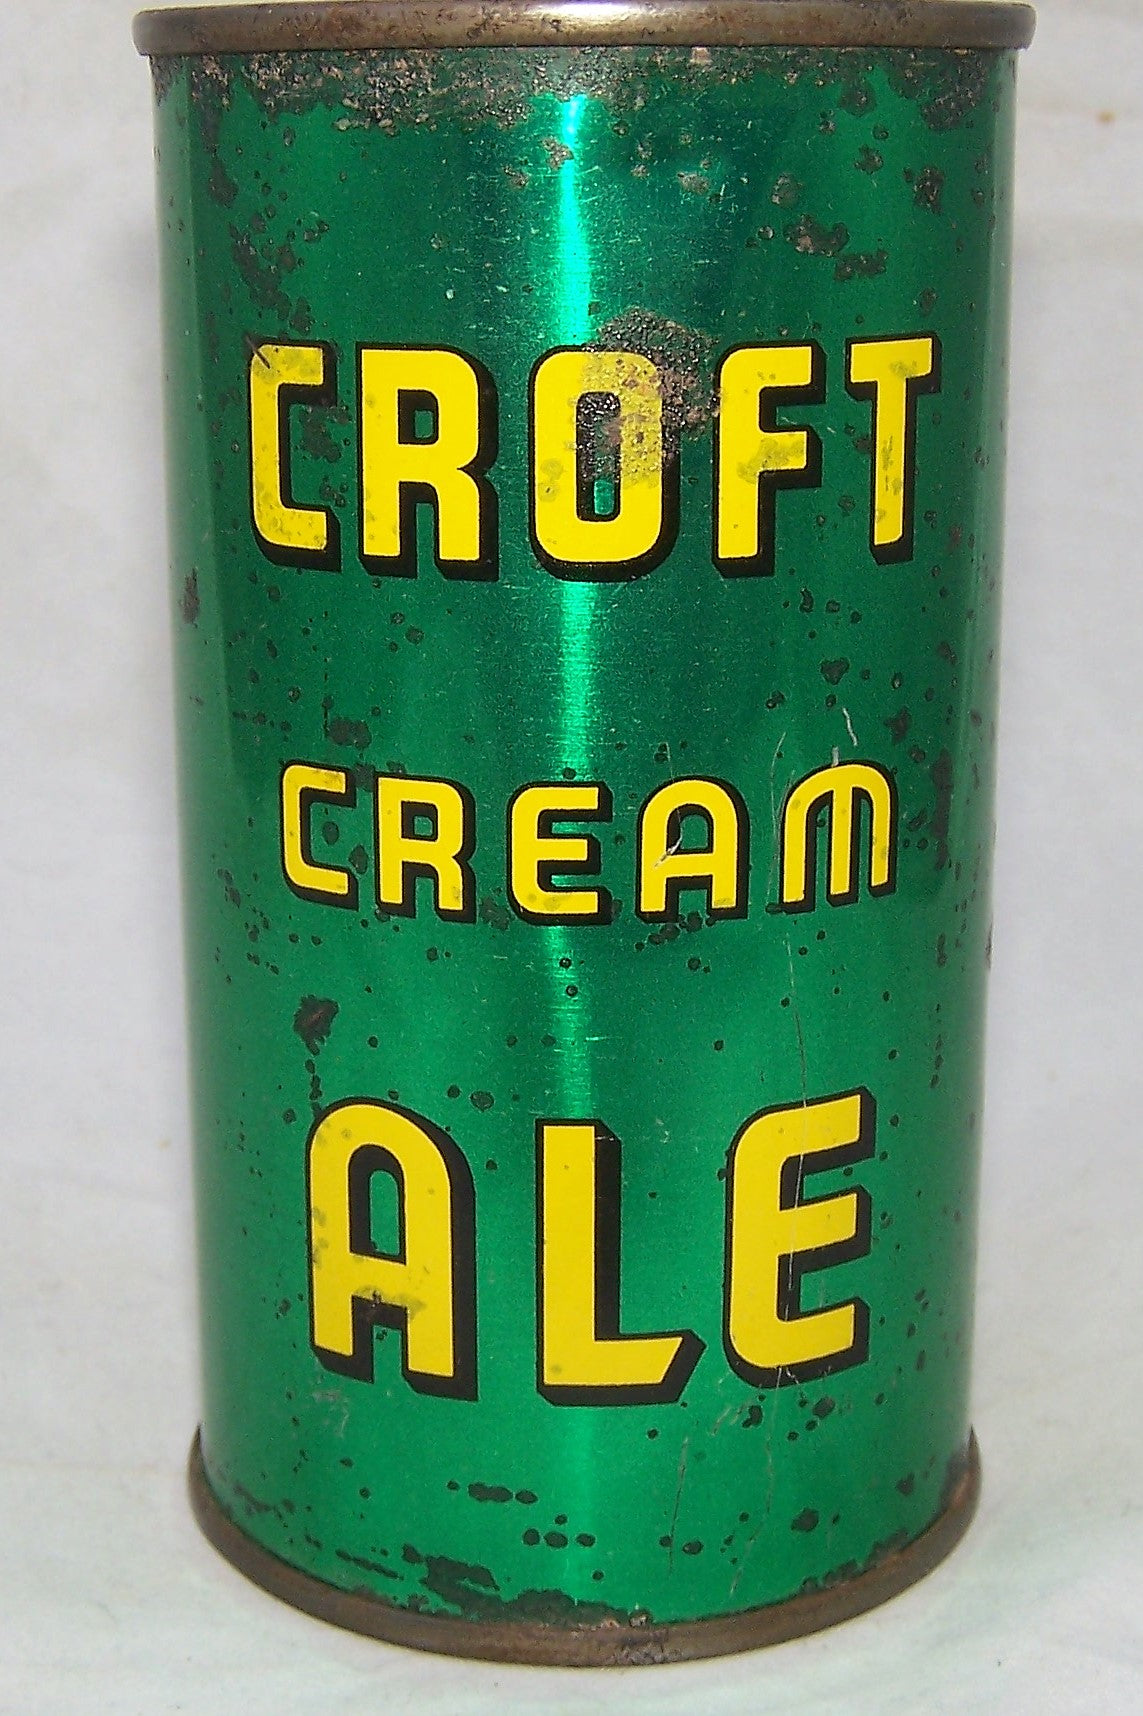 Croft Cream Ale O.I All original, Indoor can